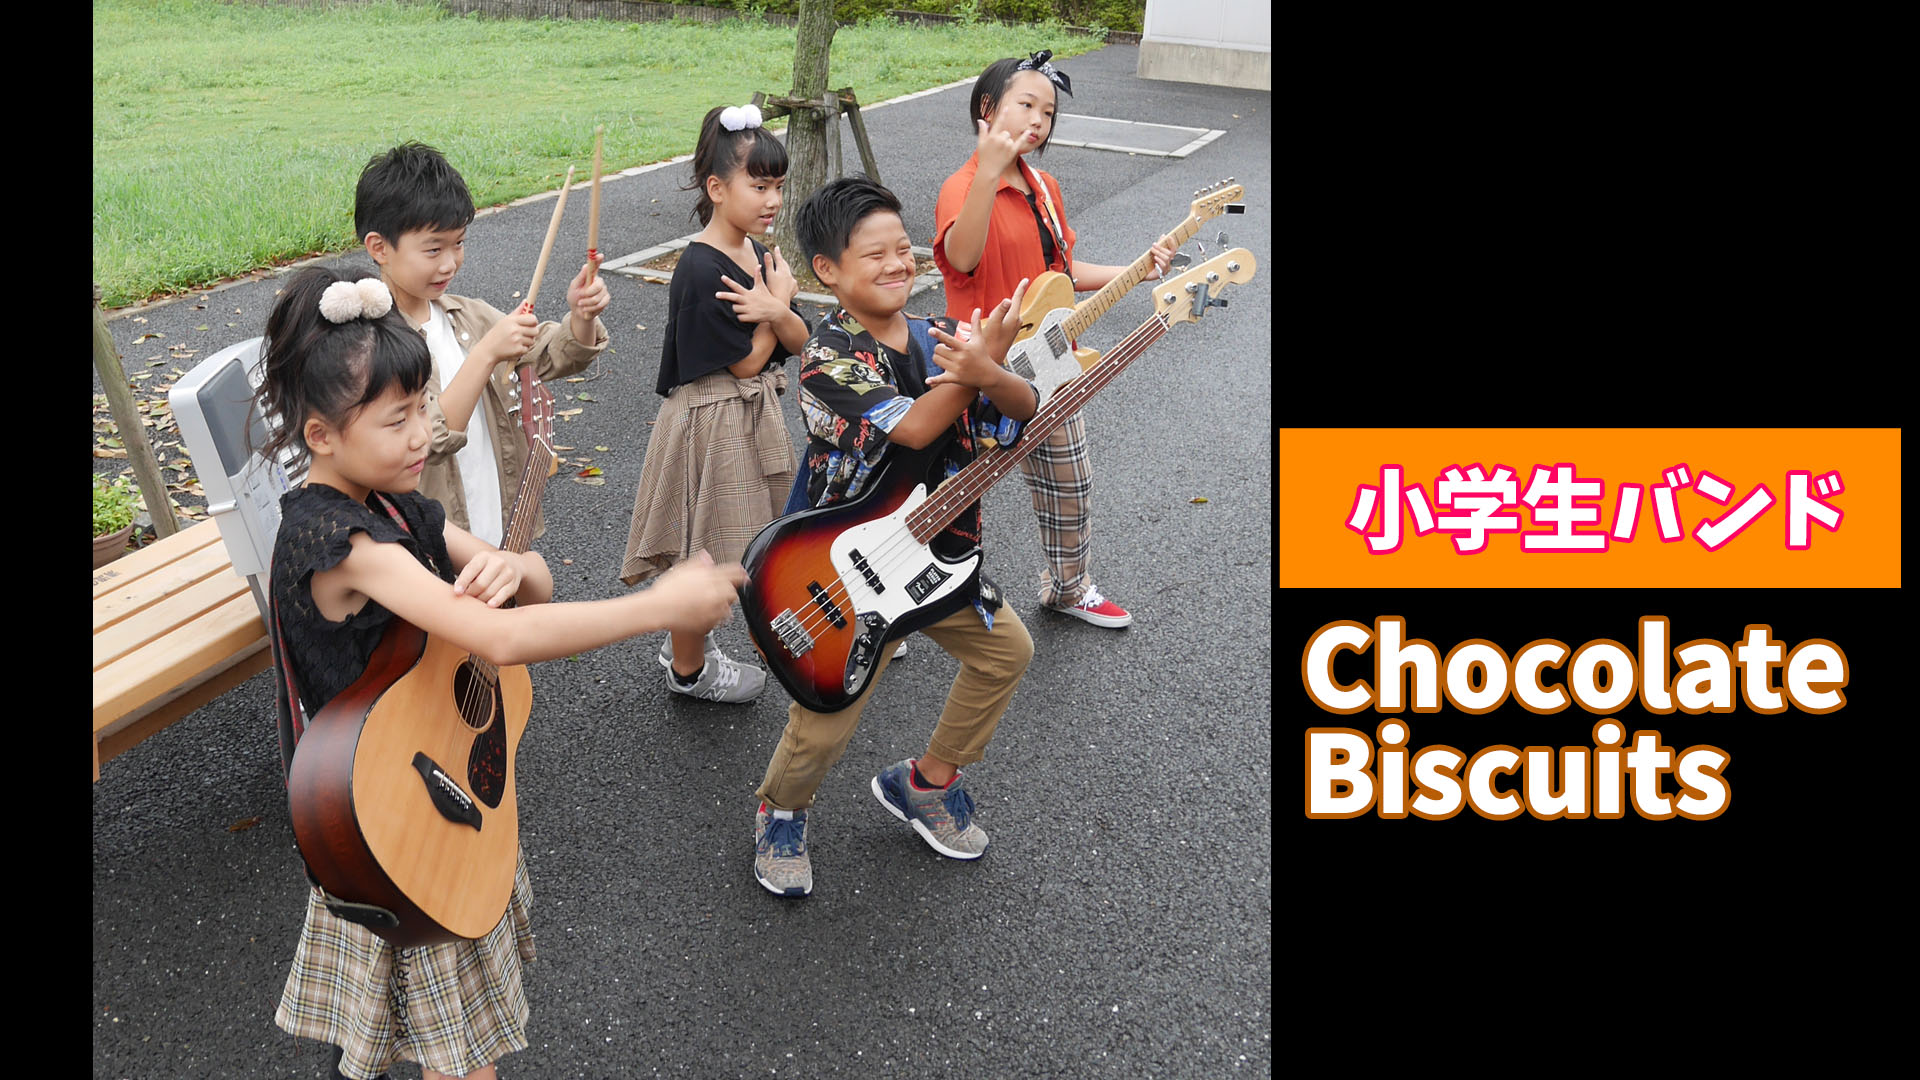 姉妹バンド「Chocolate biscuits」